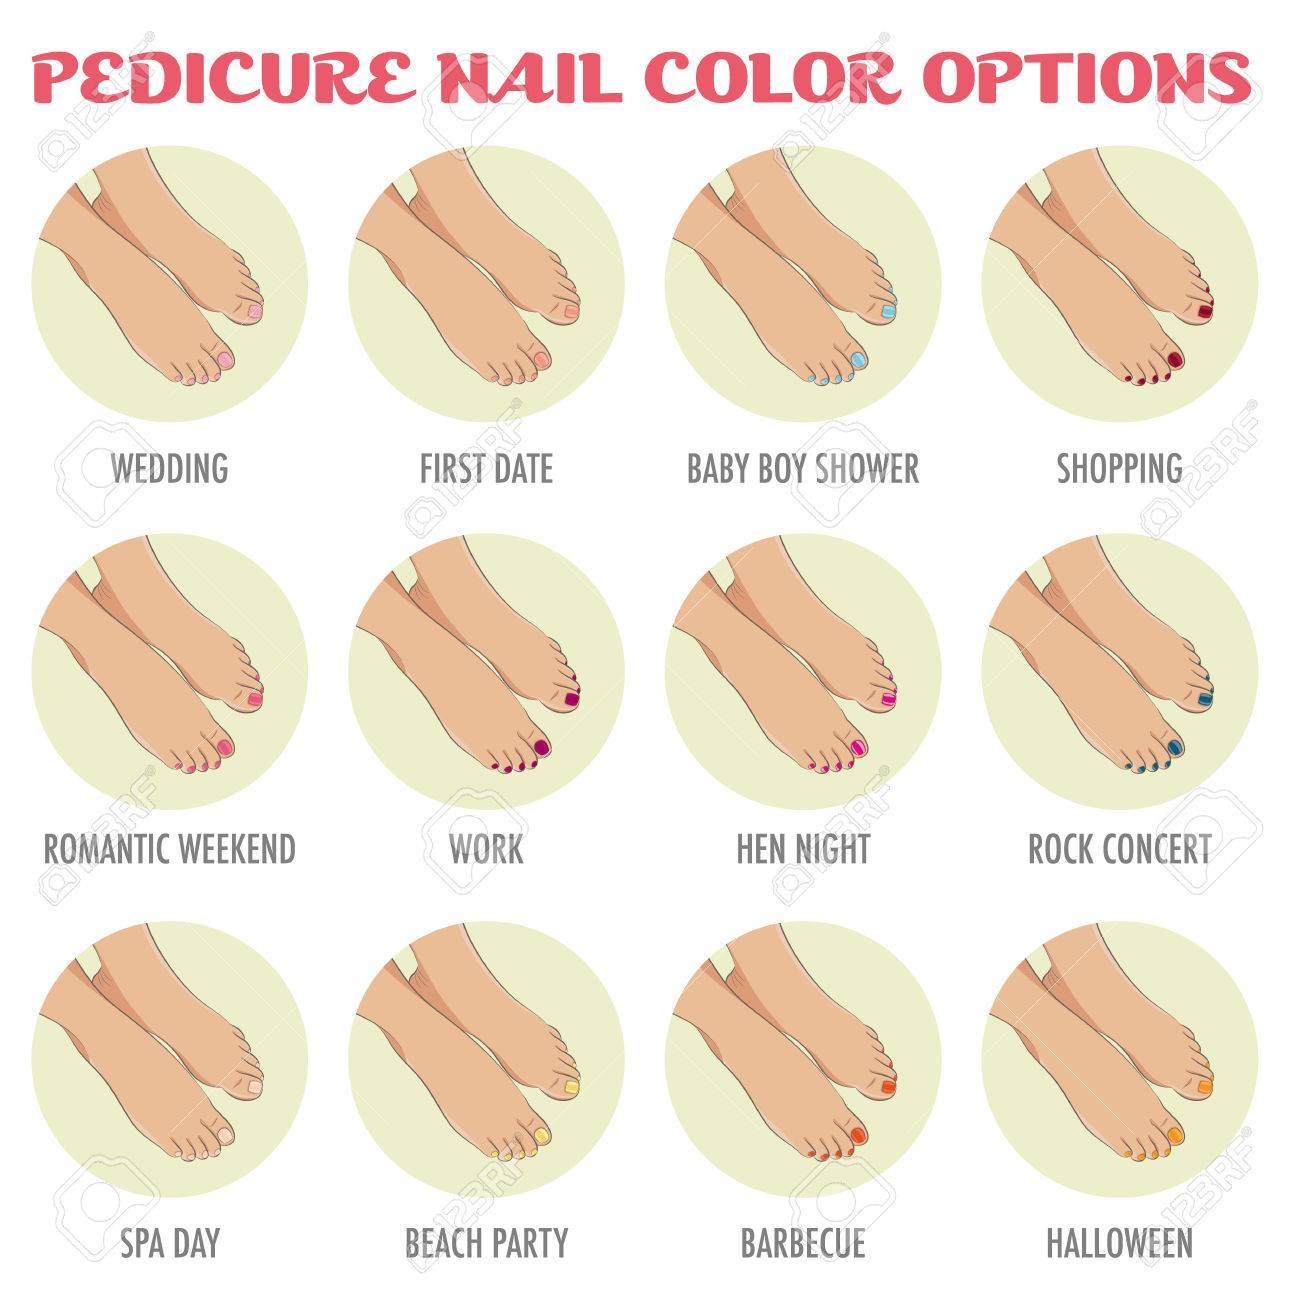 Pedicure Nail Color Options. Infographic For Beauty Salon Showing ...